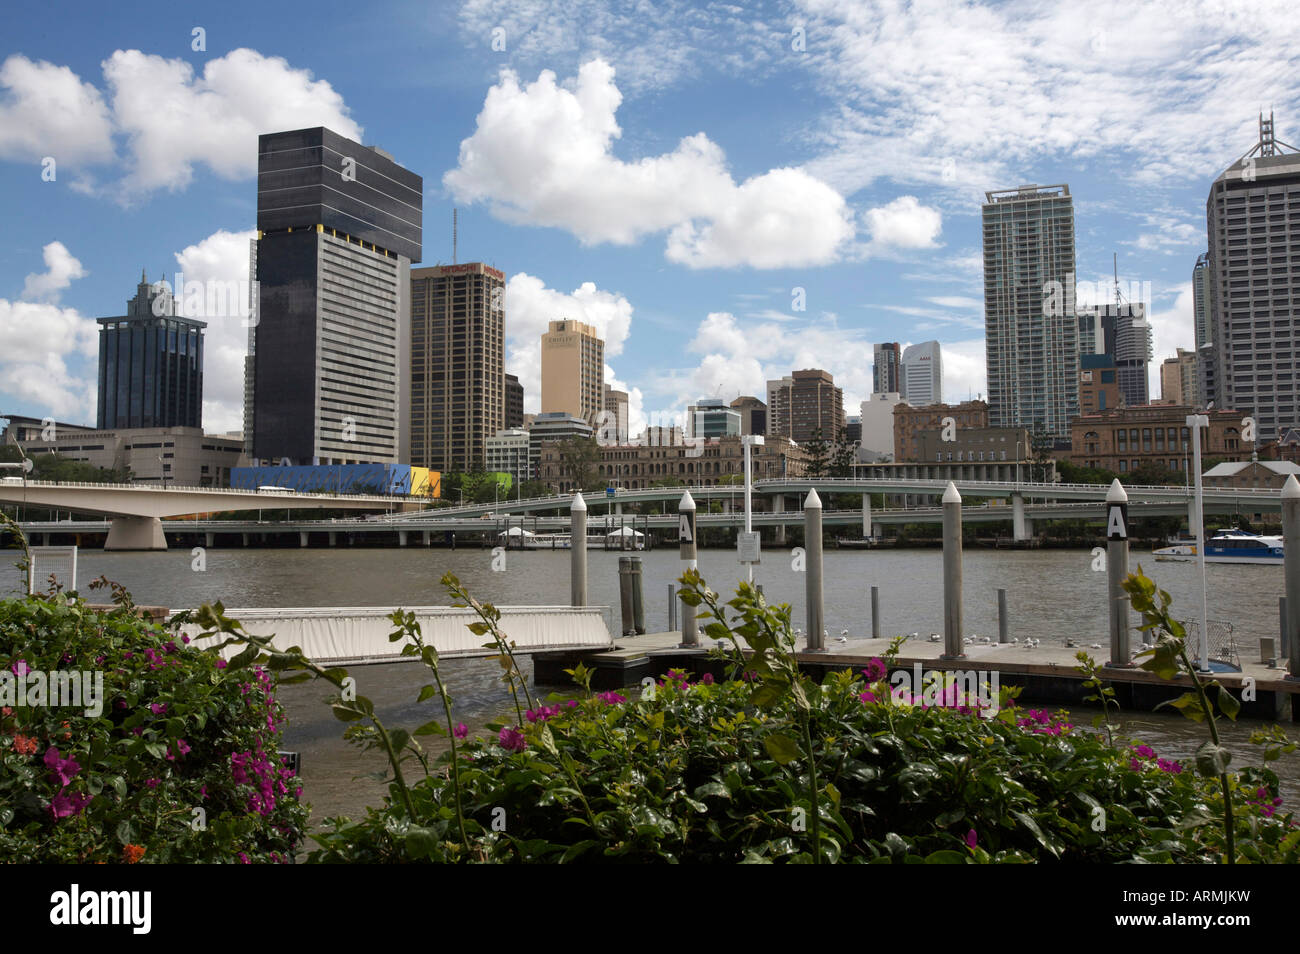 Brisbane CBD viewed from the South Bank and showing Brisbane River, Queensland,Australia - Stock Image